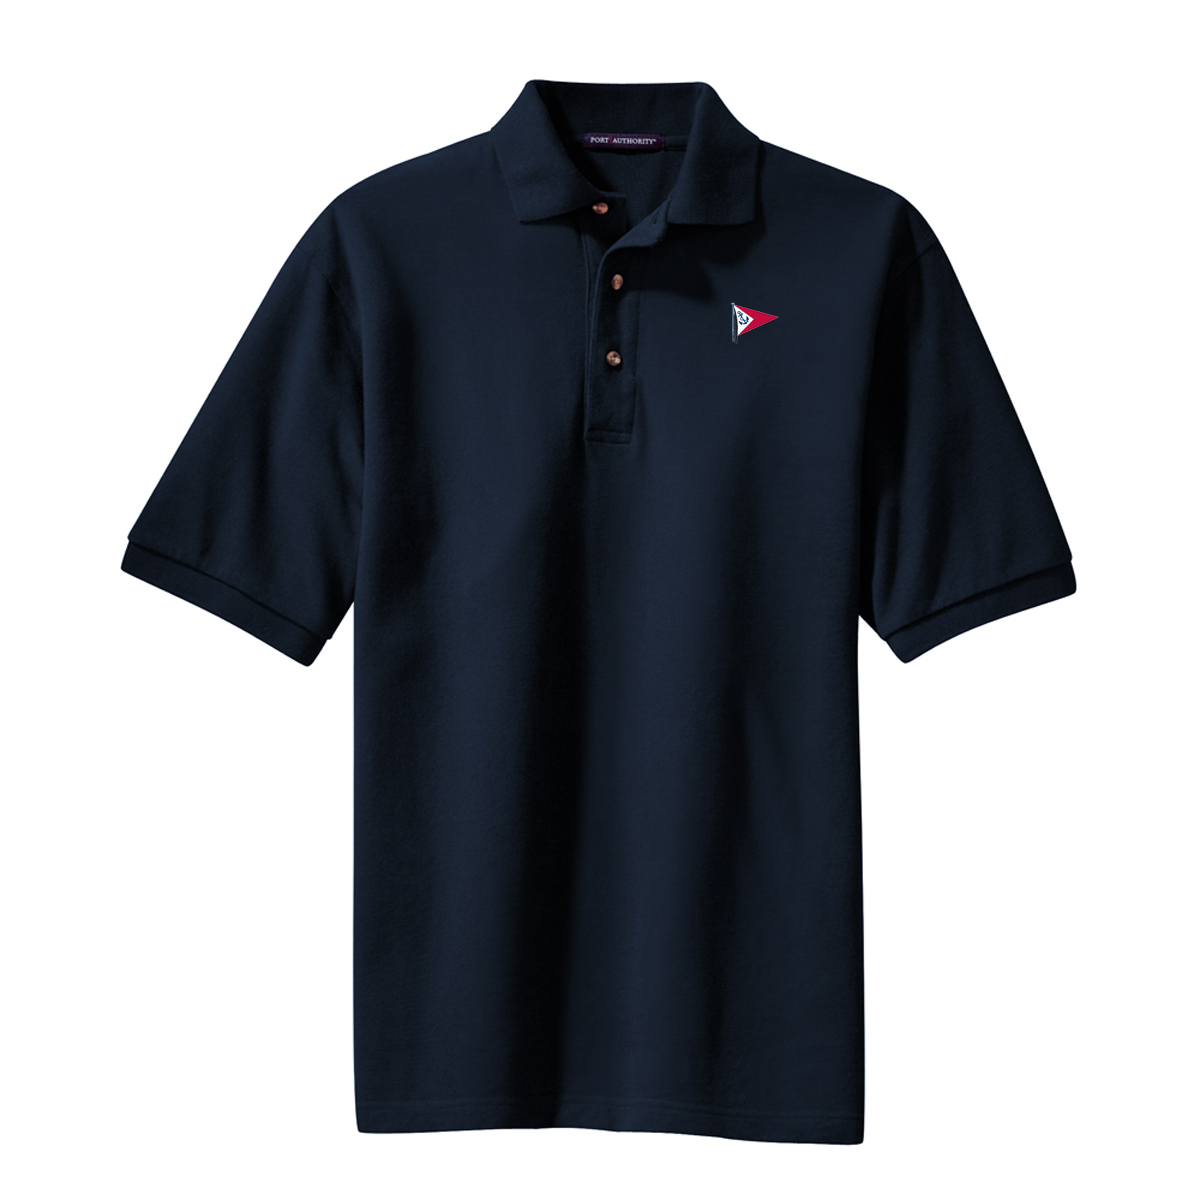 New Bedford Yacht Club - Men's Cotton Polo